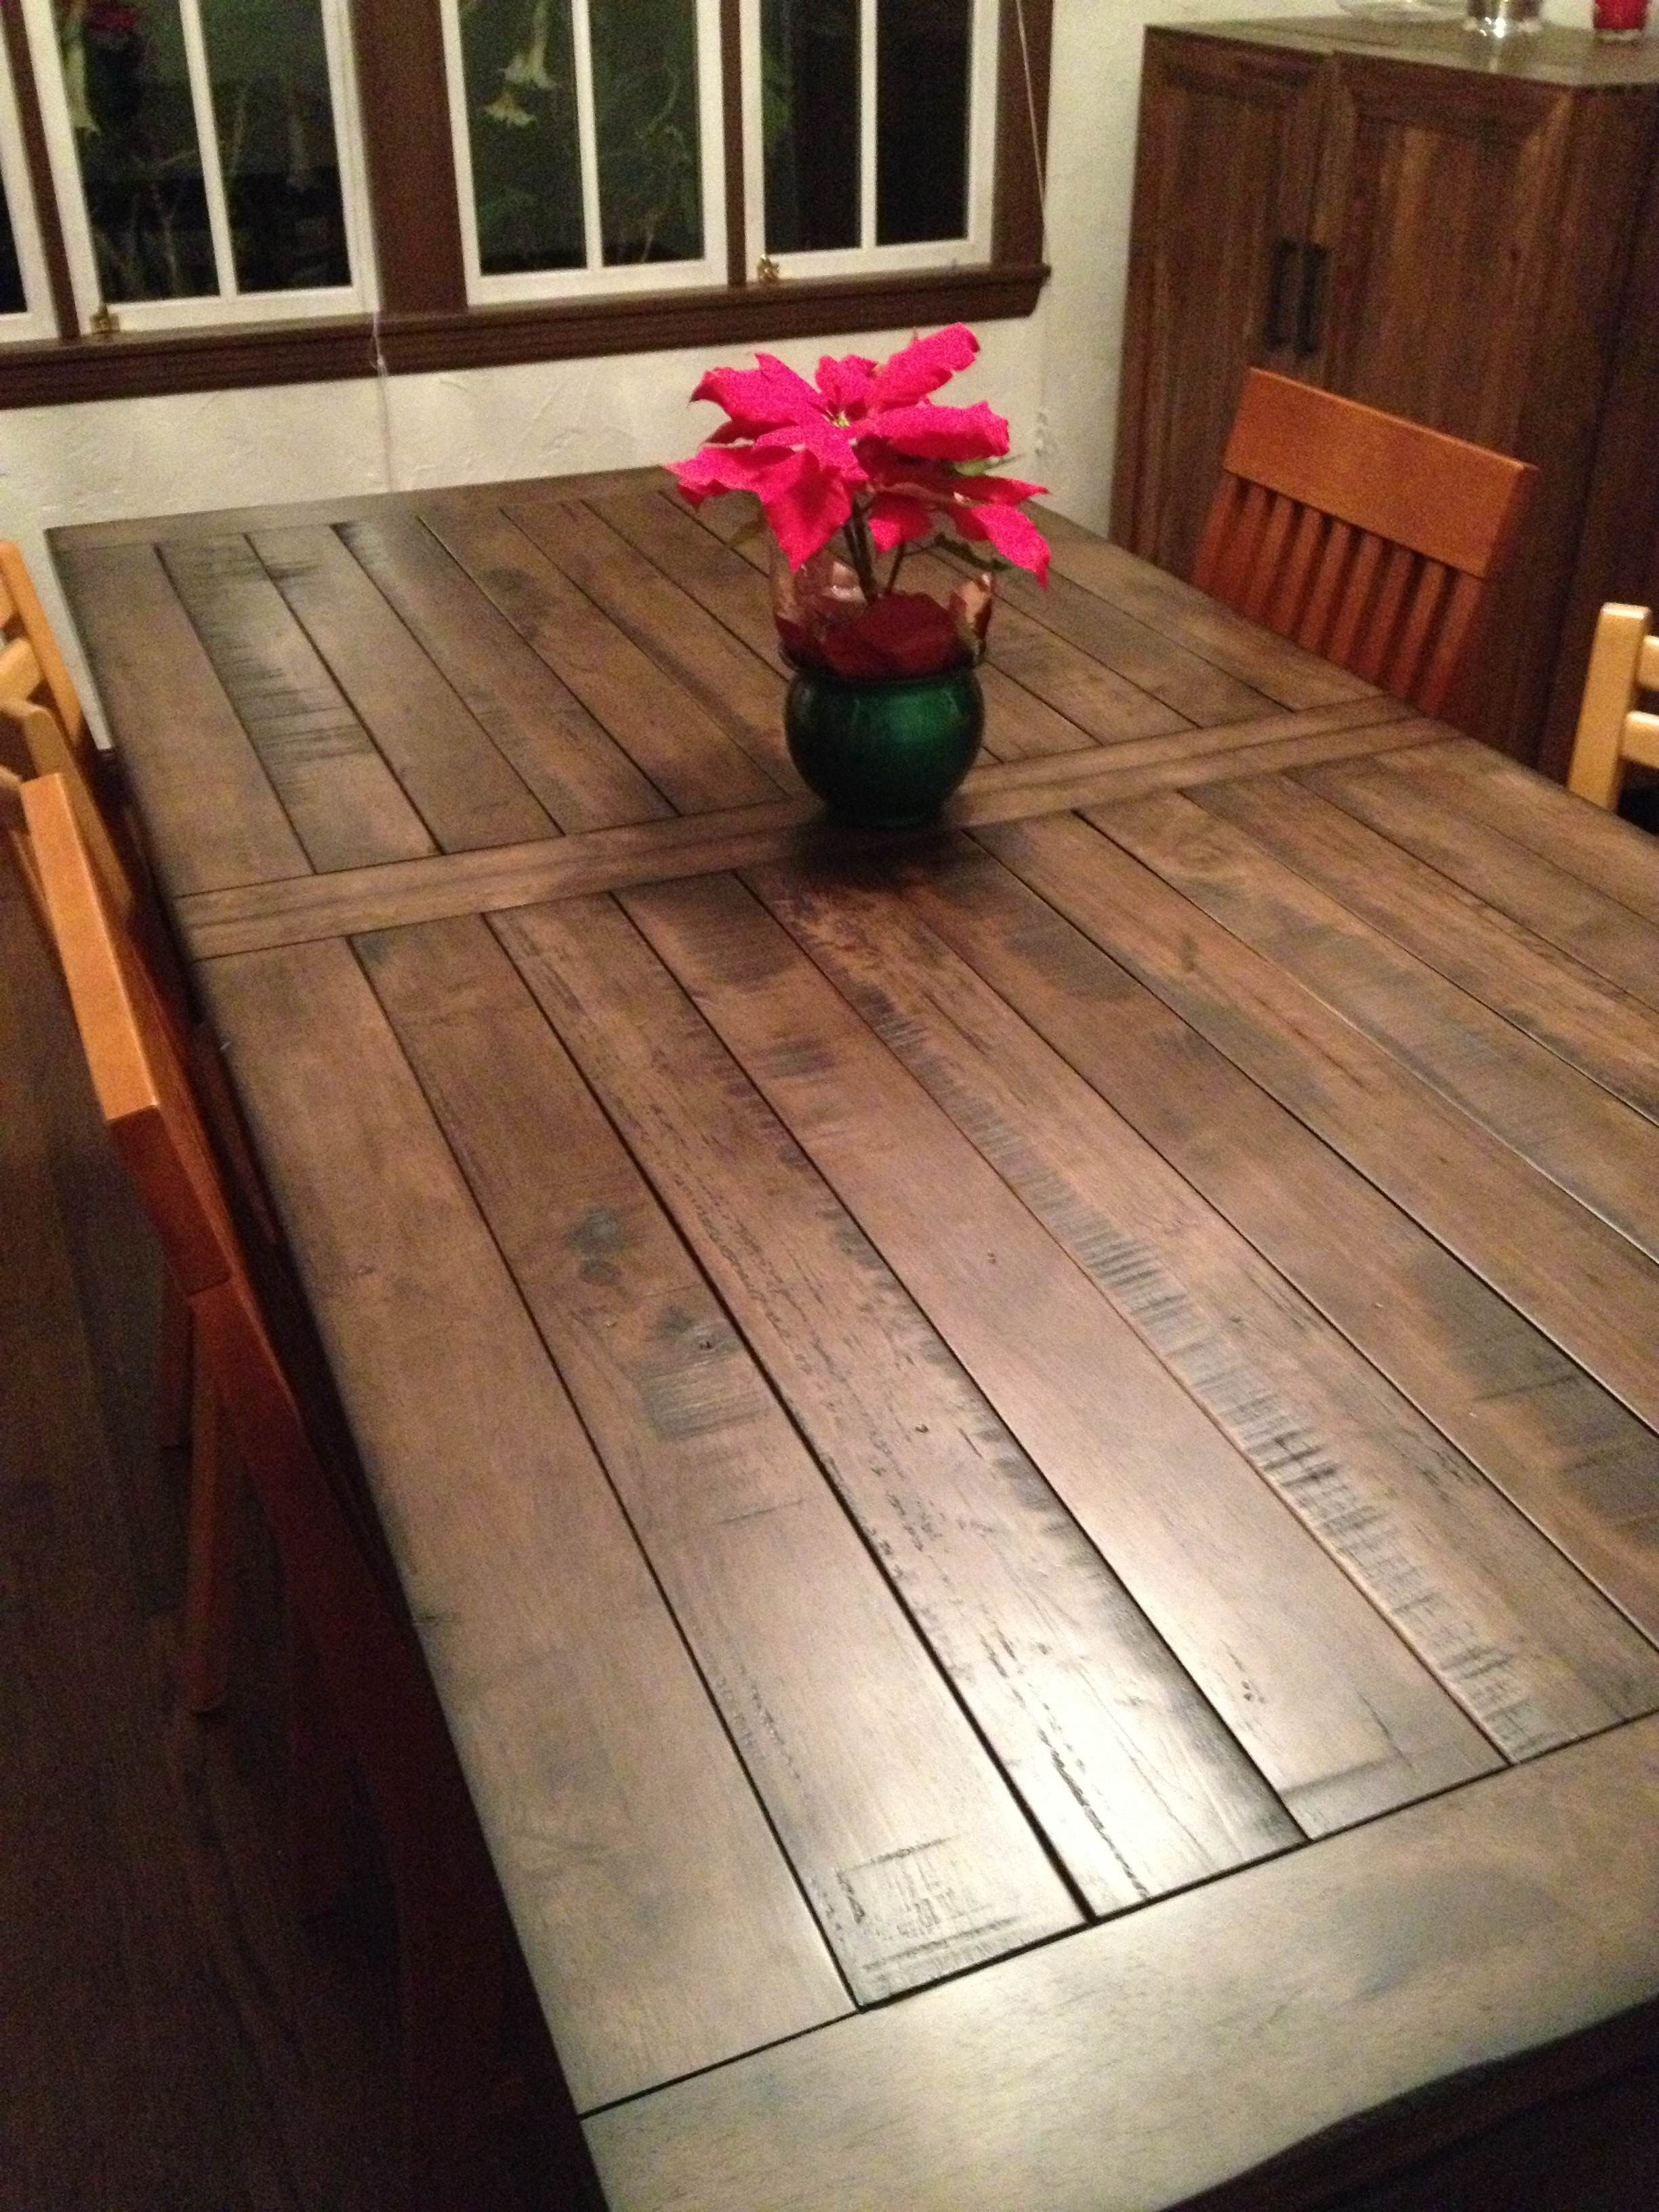 Tabletop Design DIY Pinterest Rustic Wood Table And Chairs